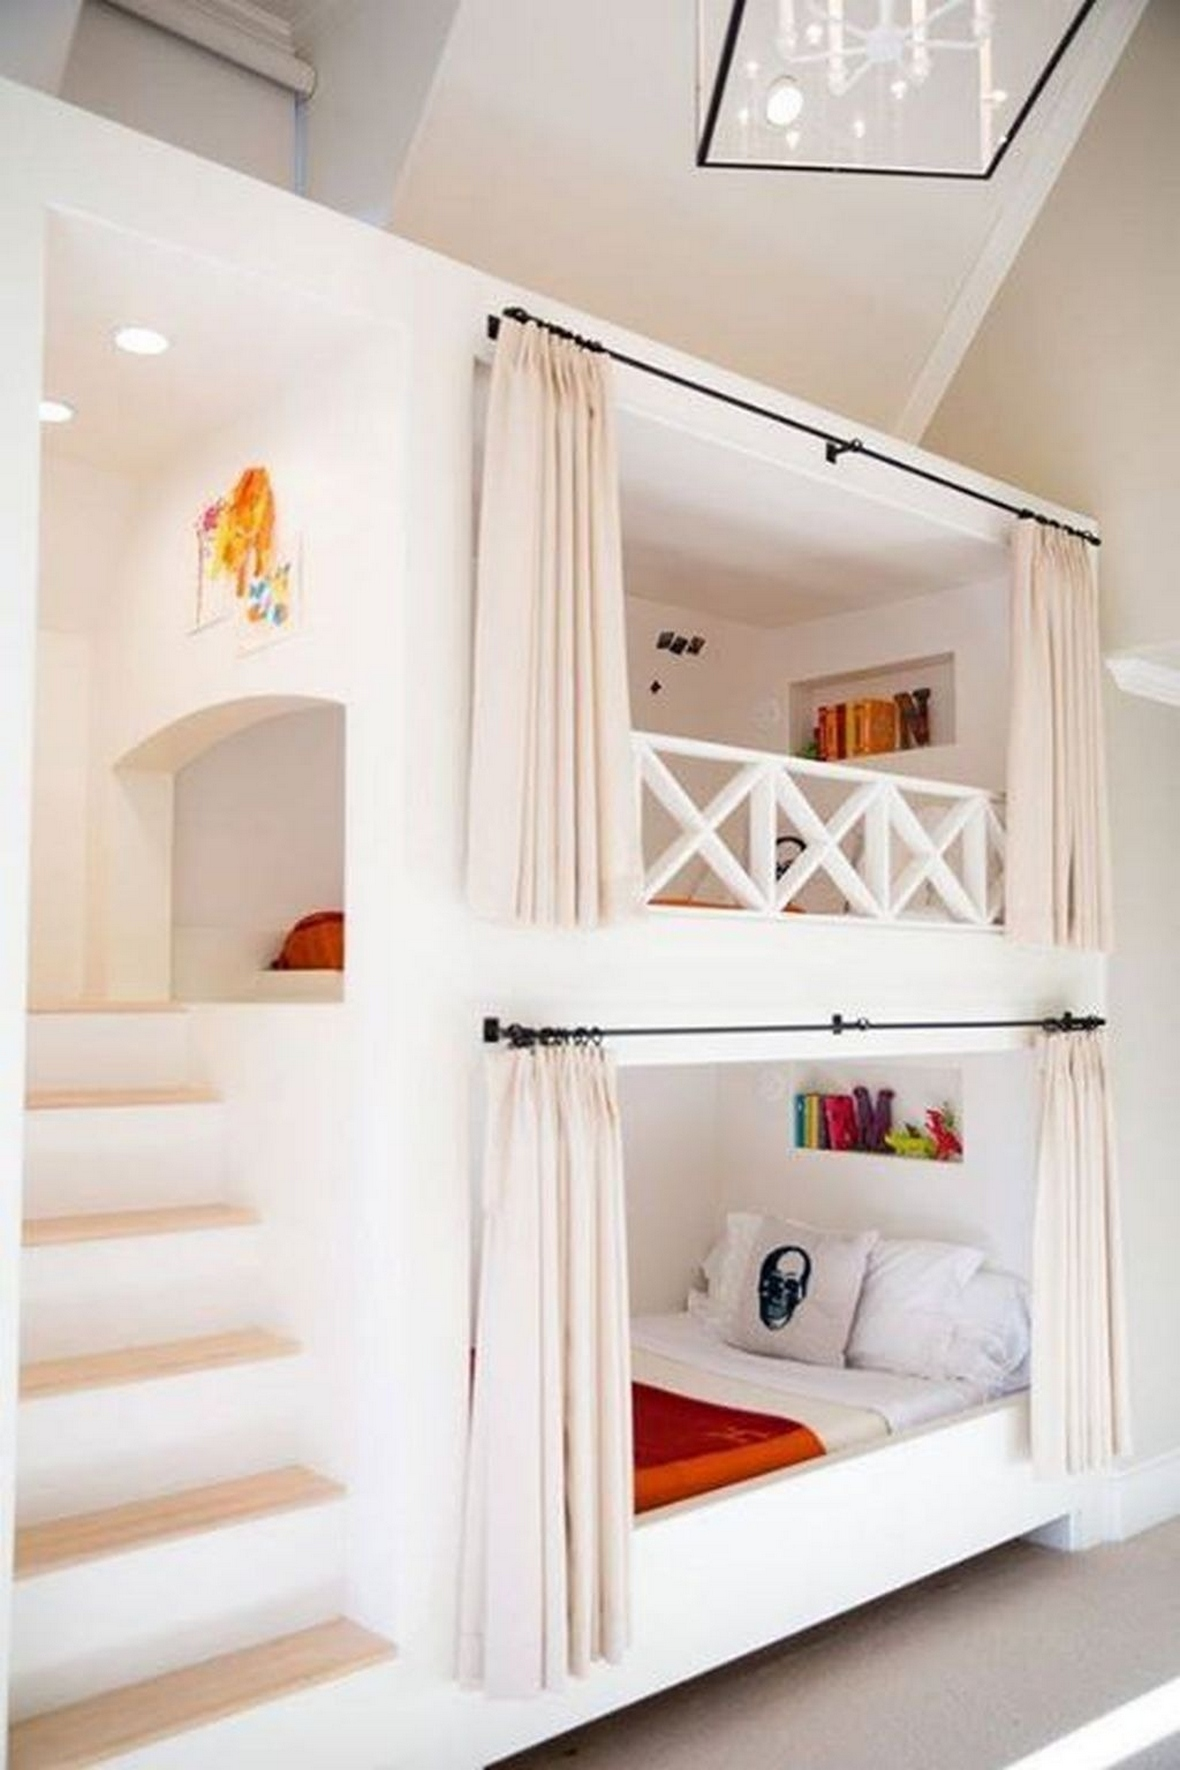 31 Top Choices Bunk Beds For Kids Design Ideas Tips For Choosing It 18